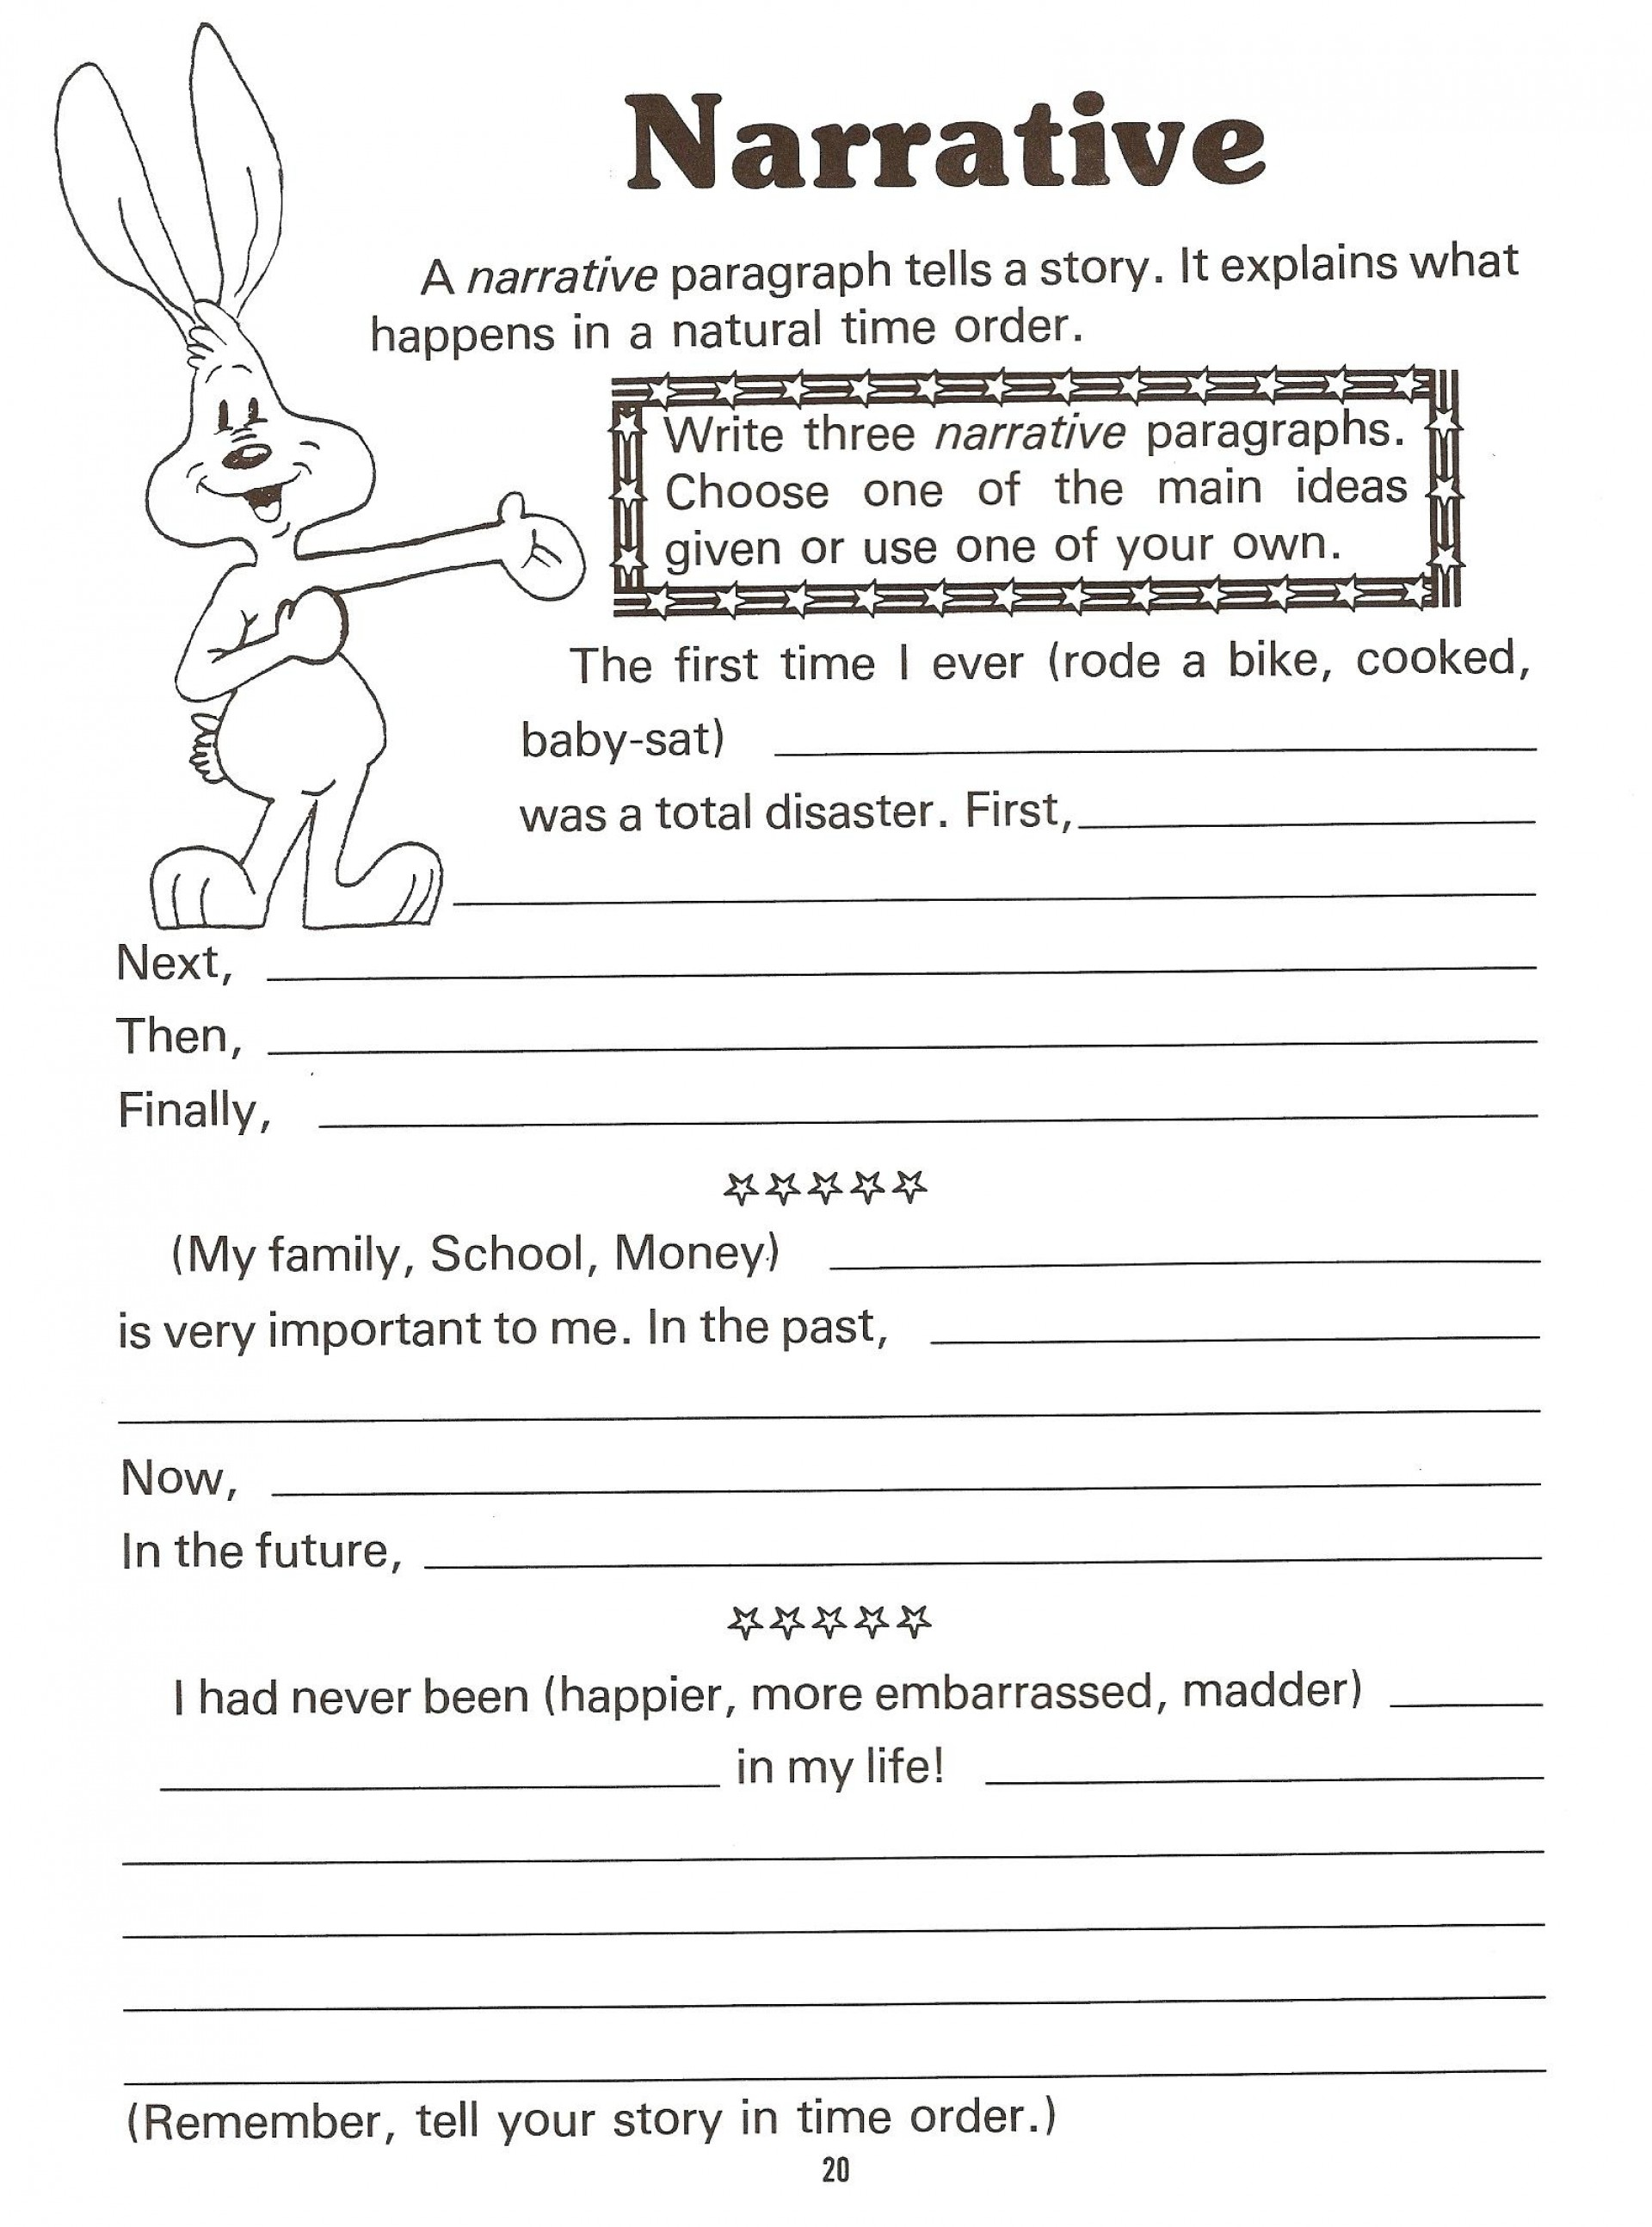 010 Essay Exampletive Topics For College Students Resume Writing Services In Credit Cart Terminal Paper Literacy Unforgettable Narrative Personal Ideas 1920